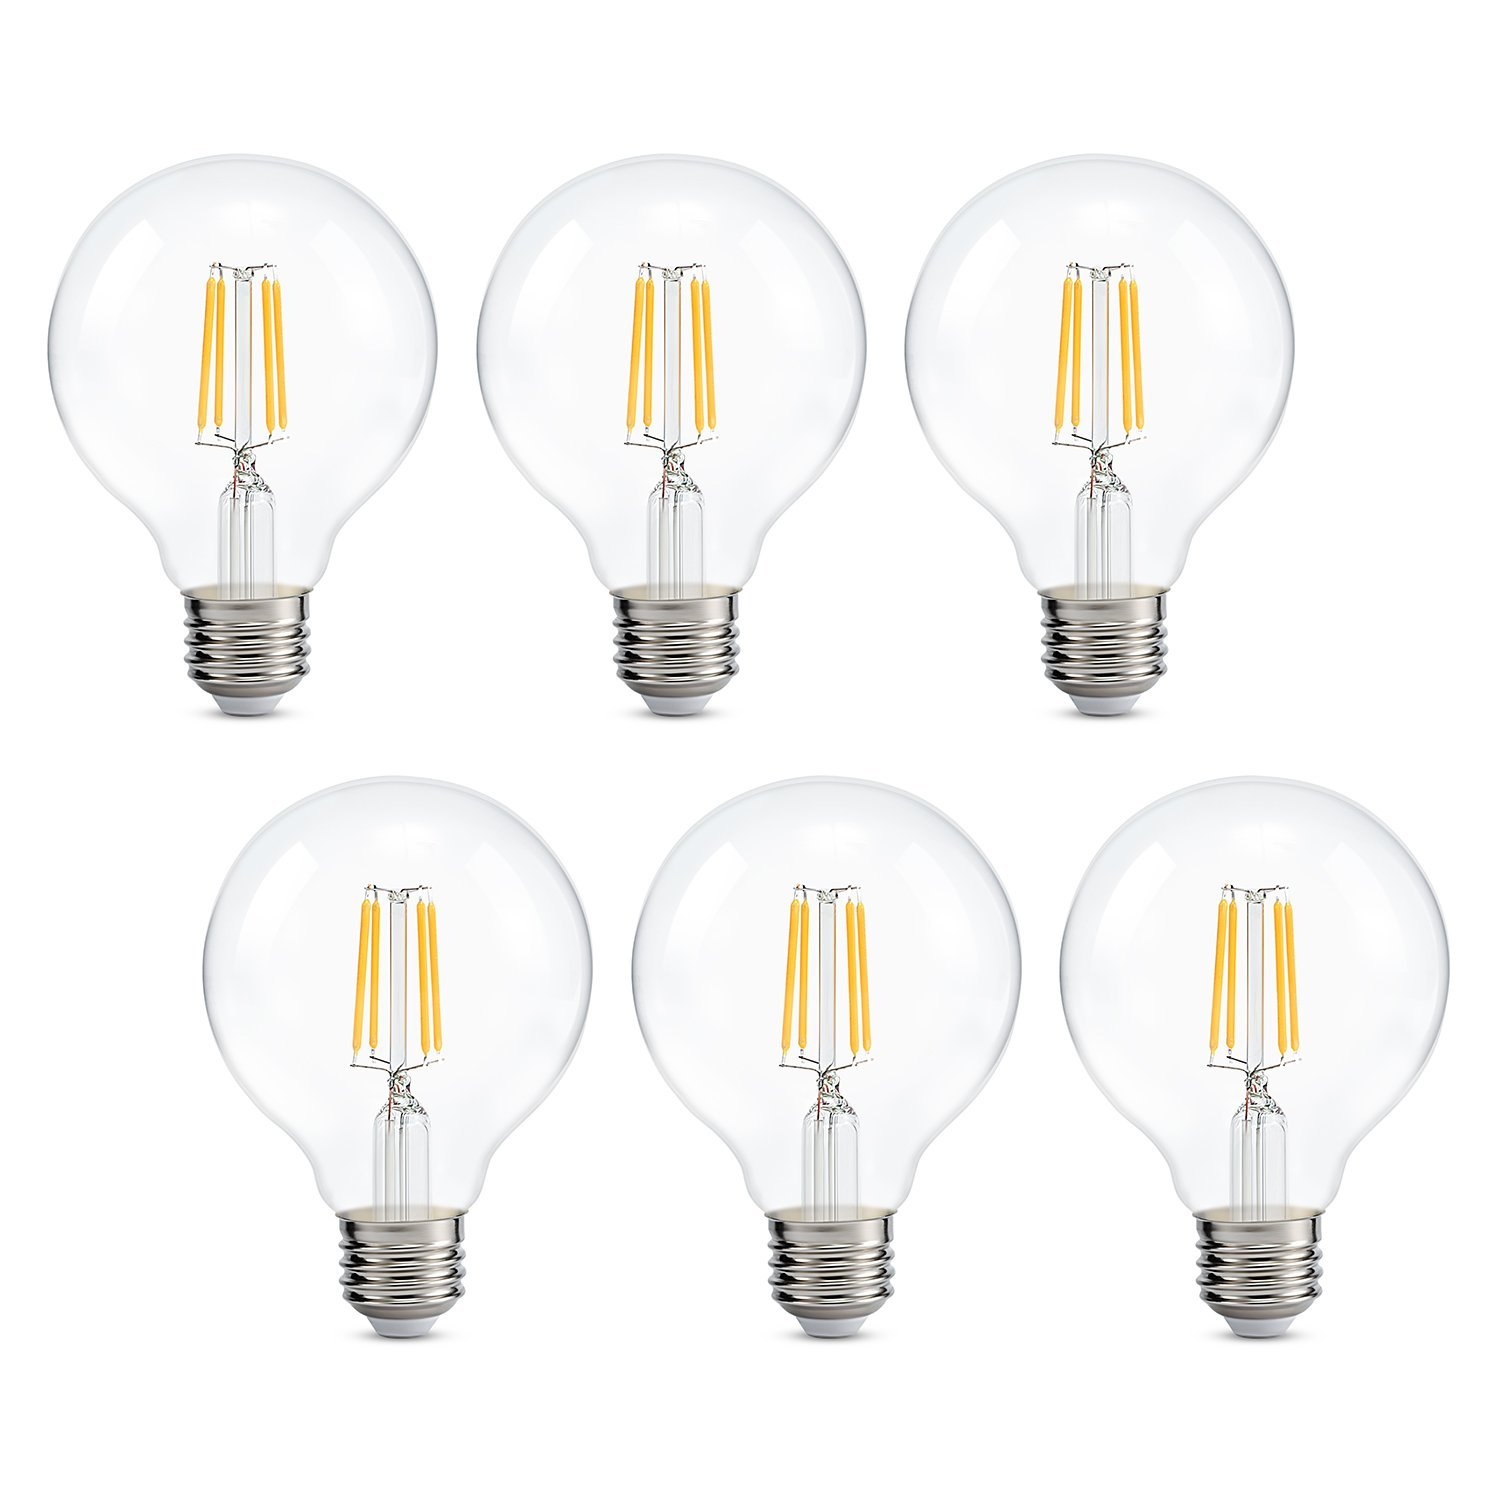 Kohree G25 LED Vintage Filament Bulbs, Dimmable Light Bulb, 4W (40W Equivalent), 470 Lumens, 2700K Warm White, 6 Packs